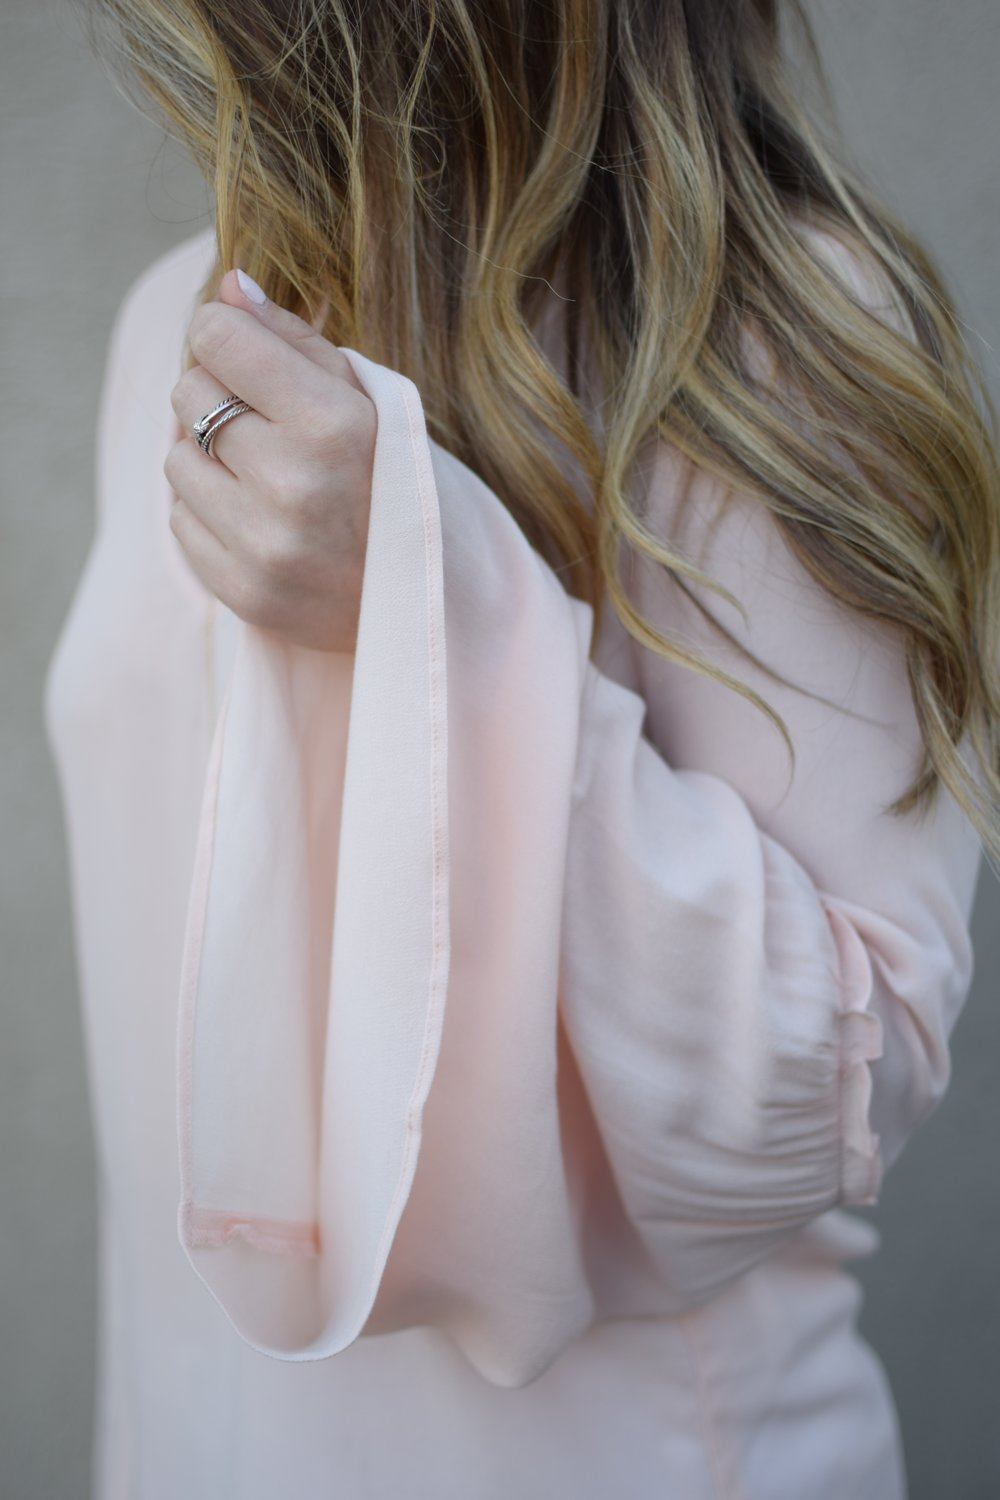 blush bell sleeve top / david yurman ring / spring outfit idea / balayage summer hair